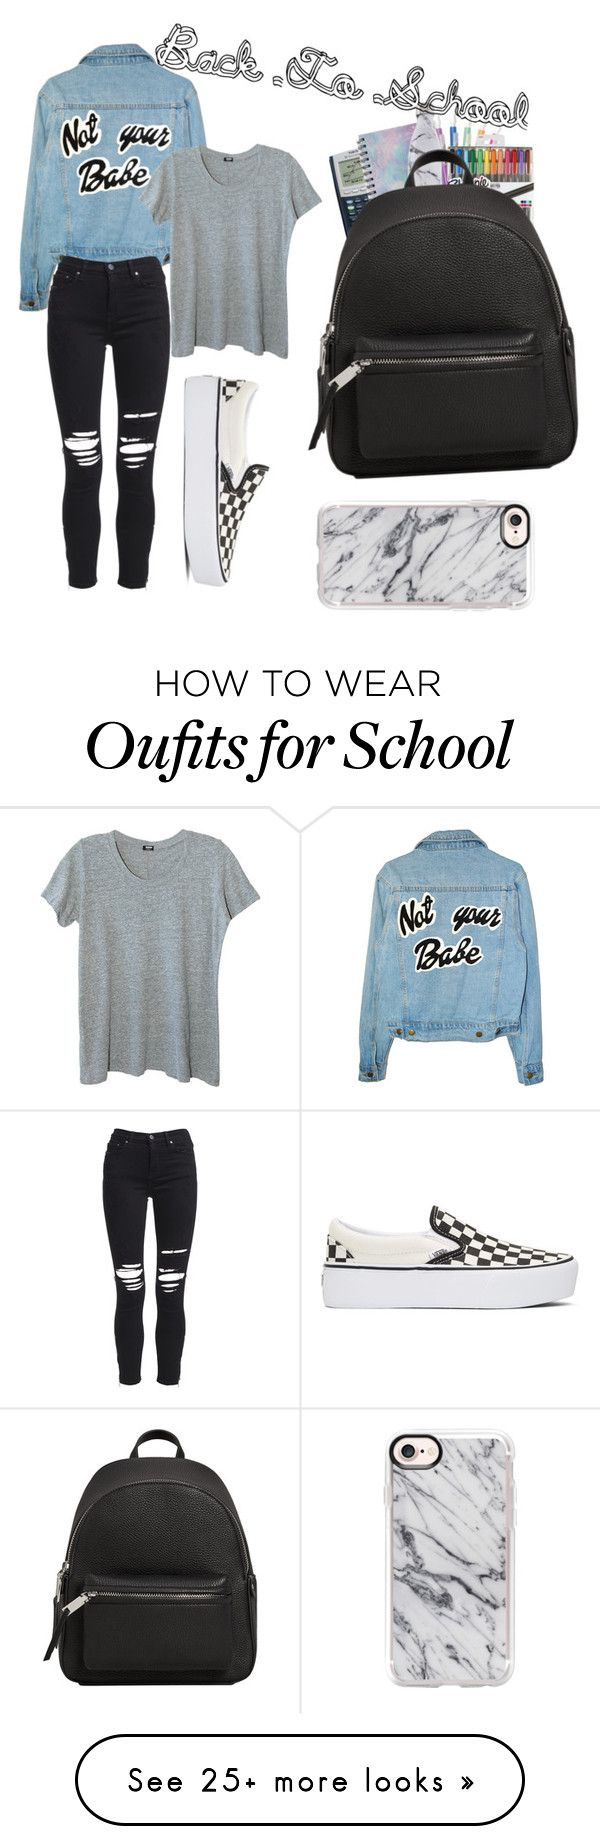 """""""Back To School"""" by curlyhead23 on Polyvore featuring Monrow, AMIRI, Vans, Forever 21, Sharpie, S'well, MANGO and Casetify"""